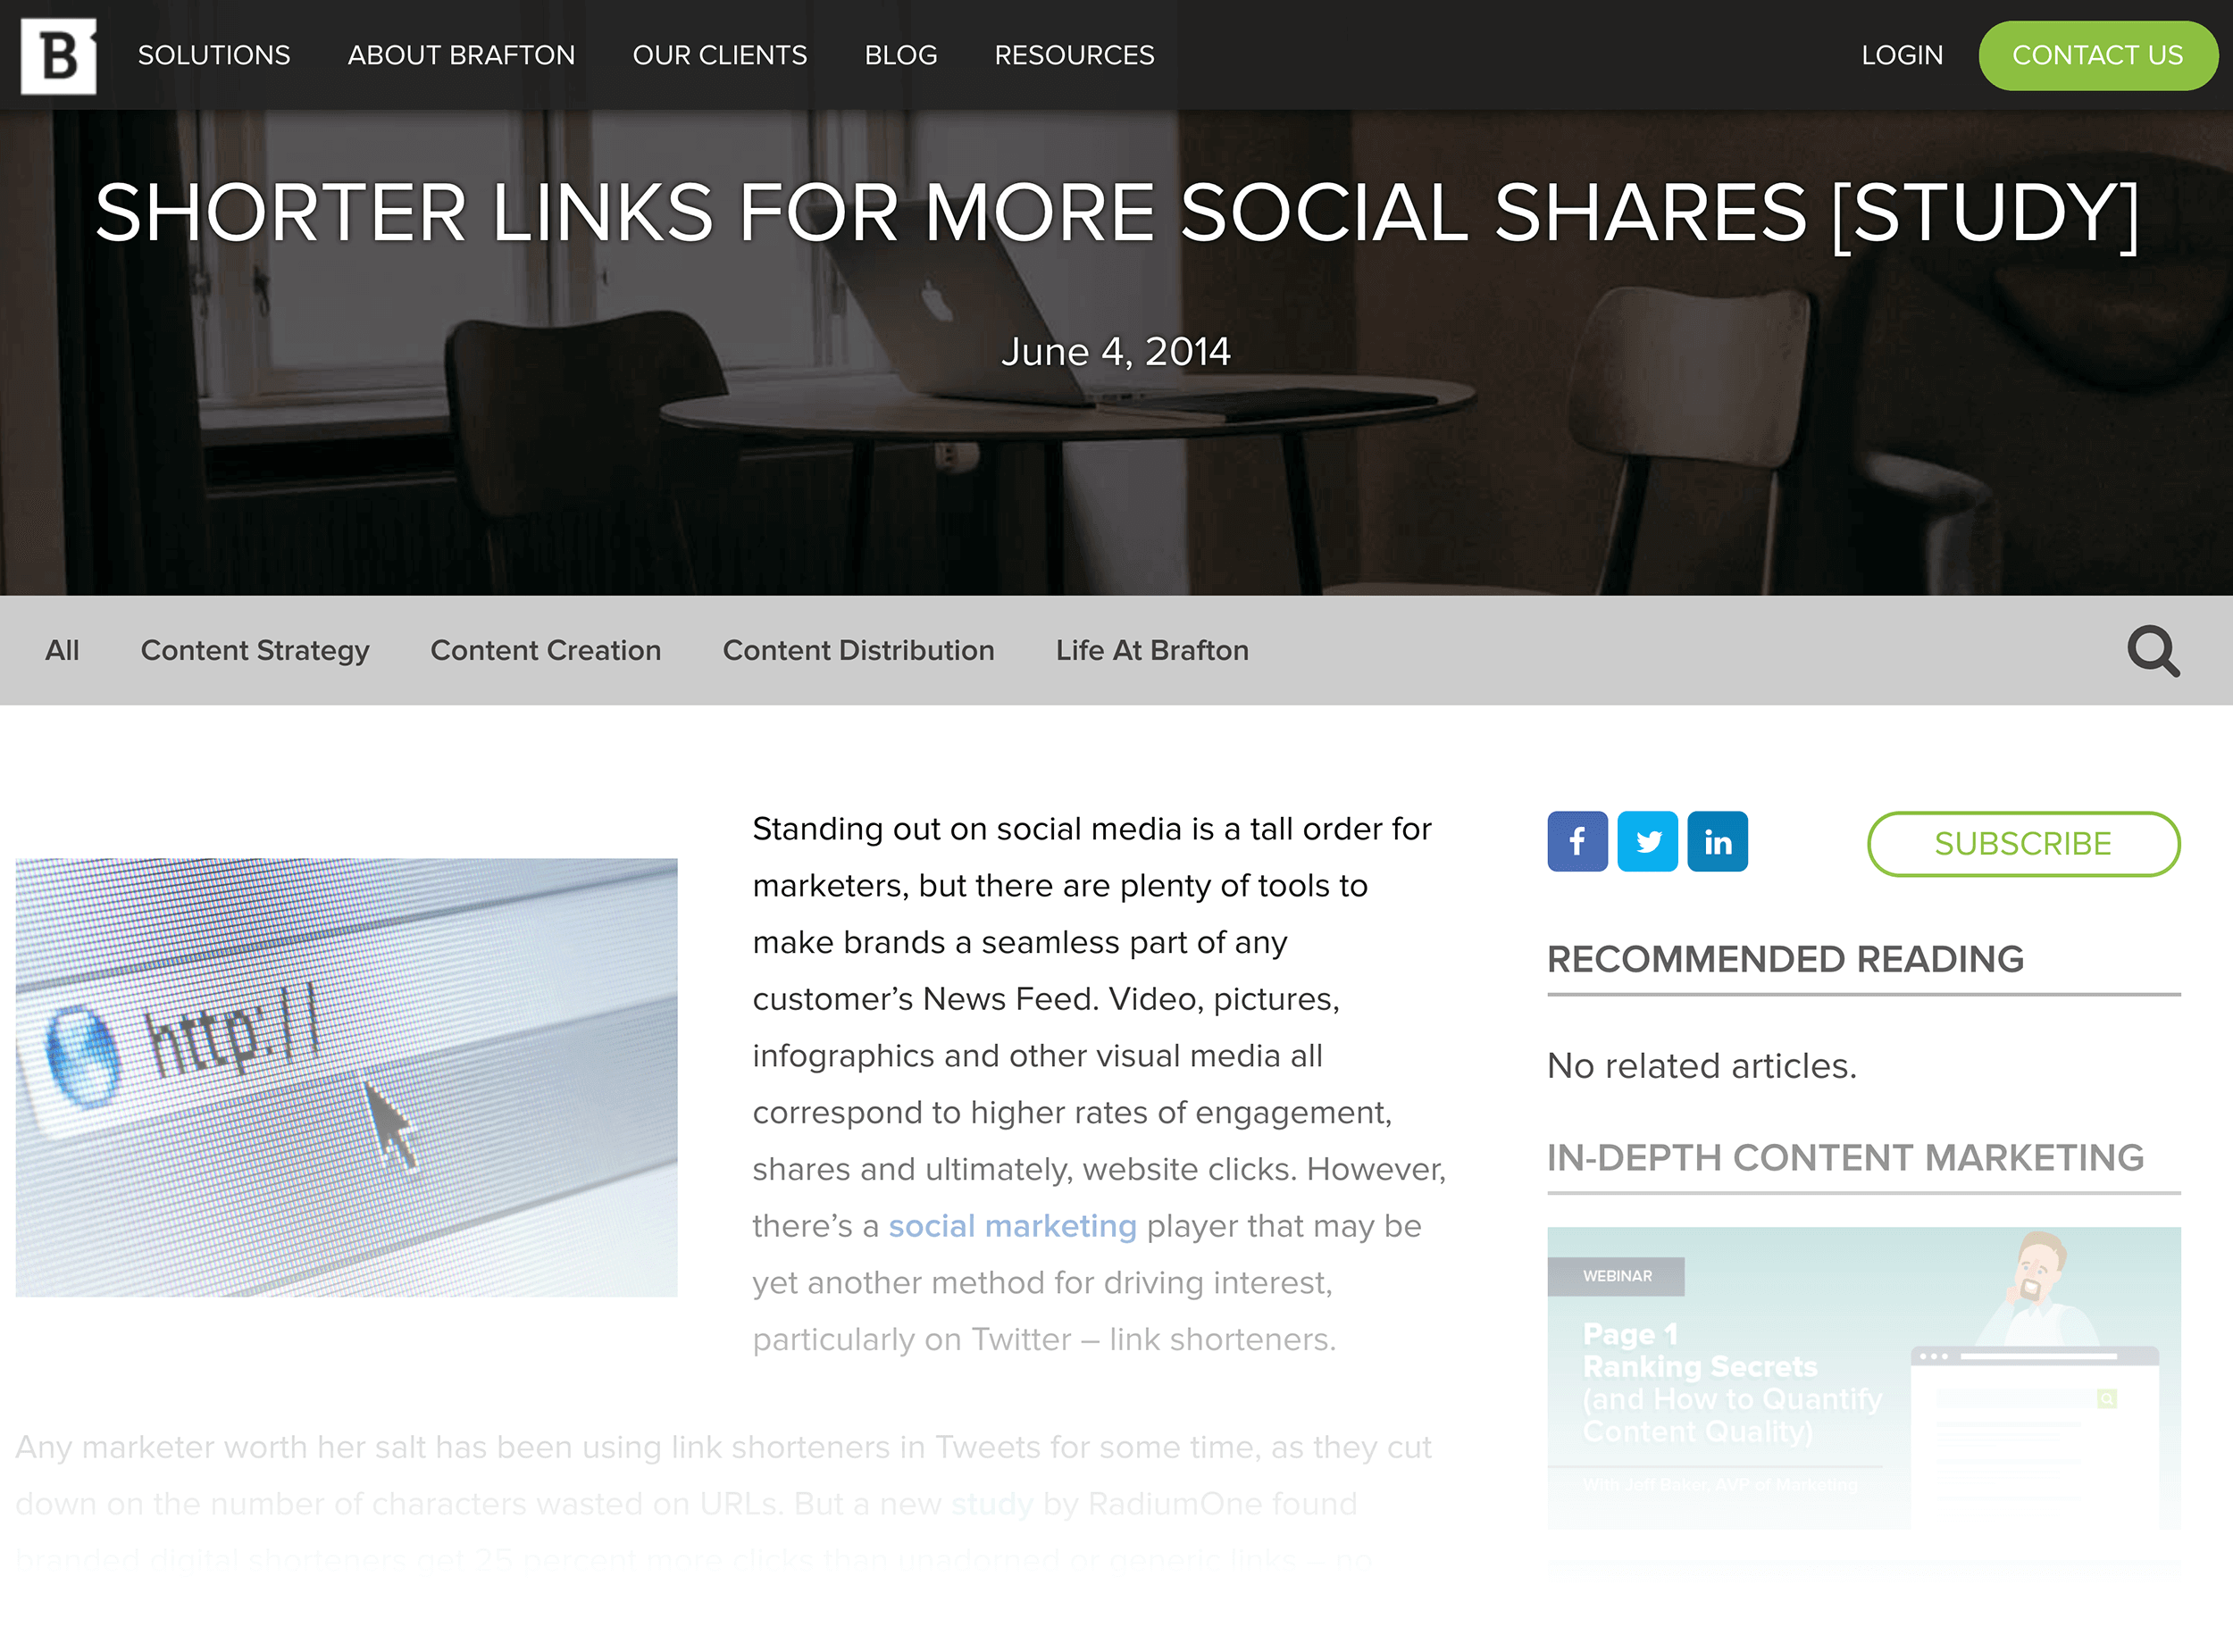 Short URLs are correlated with more social shares